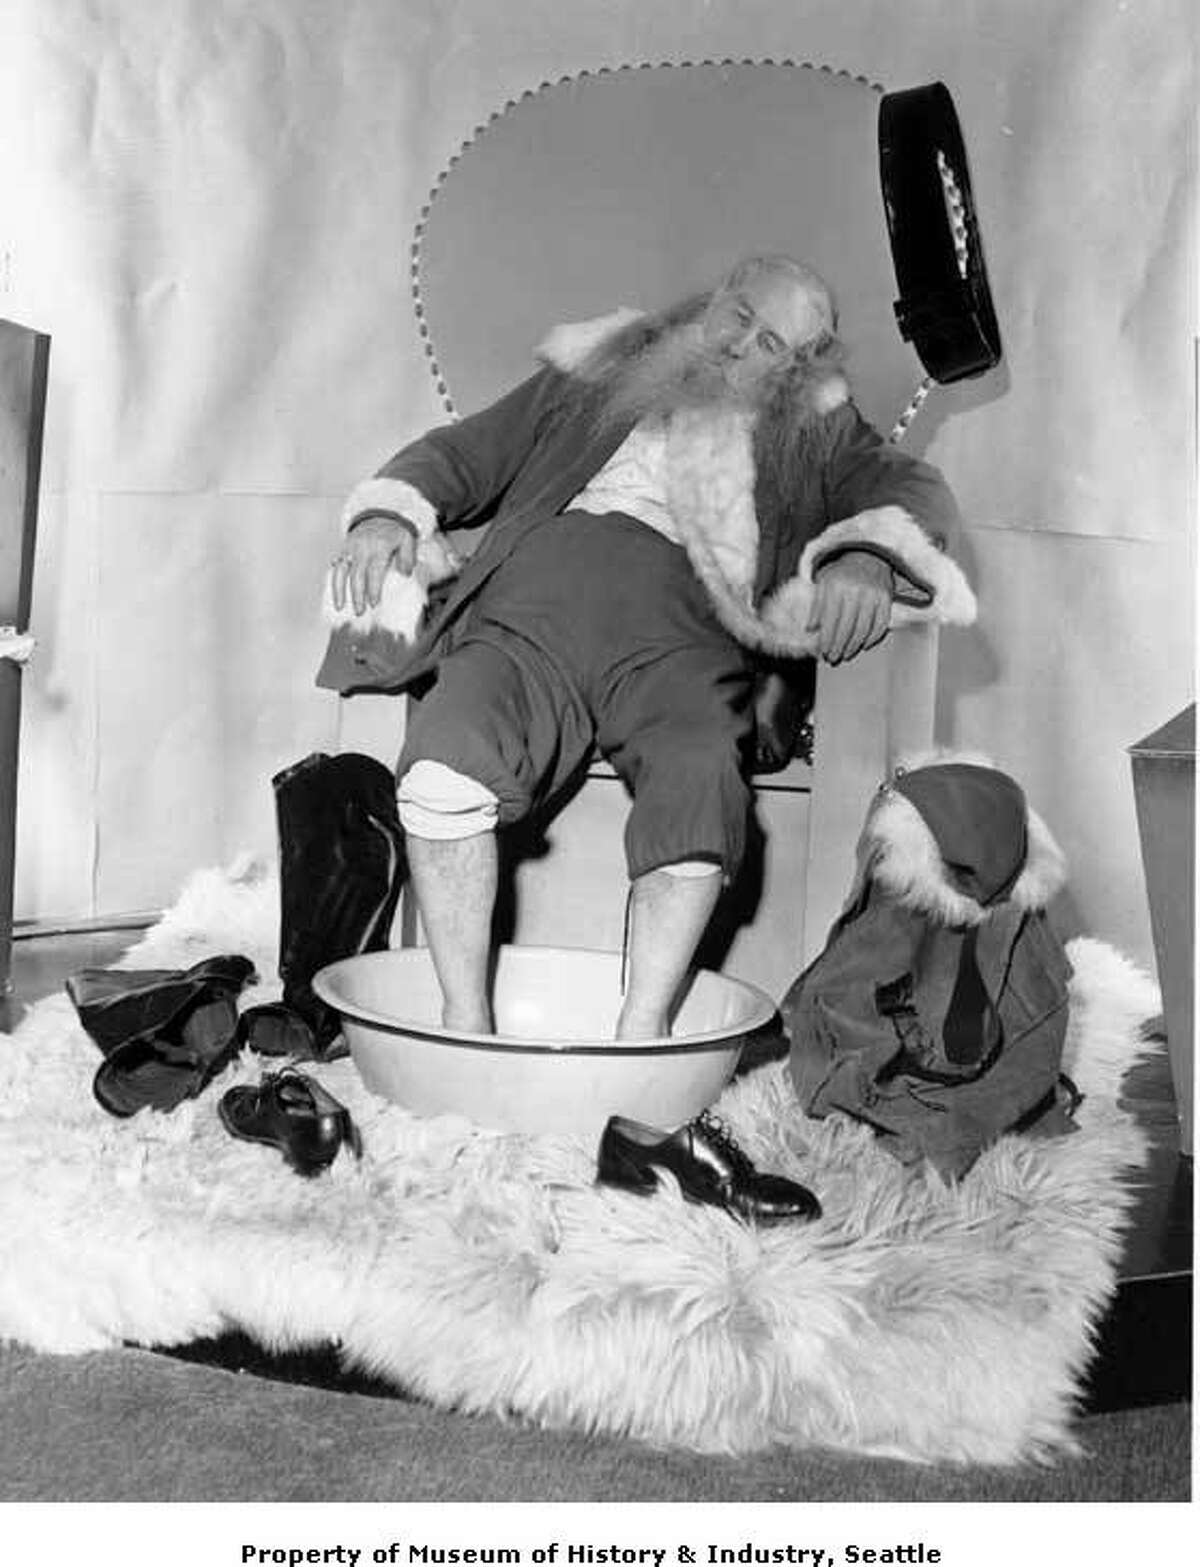 """""""On Christmas night in 1940, the Seattle Post-Intelligencer gave several accounts of Santa Claus' long day. The police reporter noted that Santa was """"unacountably missing"""" from the North Pole for twelve hours. A foreign correspondent reported that German anti-aircraft fire had wounded three of Santa's reindeer. The society editor noted that Santa had gotten home safely and was about to leave for a restful vacation. This December 1940 photo shows an exhausted Santa Claus bathing his tired feet in a hot mustard bath."""" -MOHAI. Photo courtesy MOHAI, Seattle Post-Intelligencer Collection, image number PI23234."""